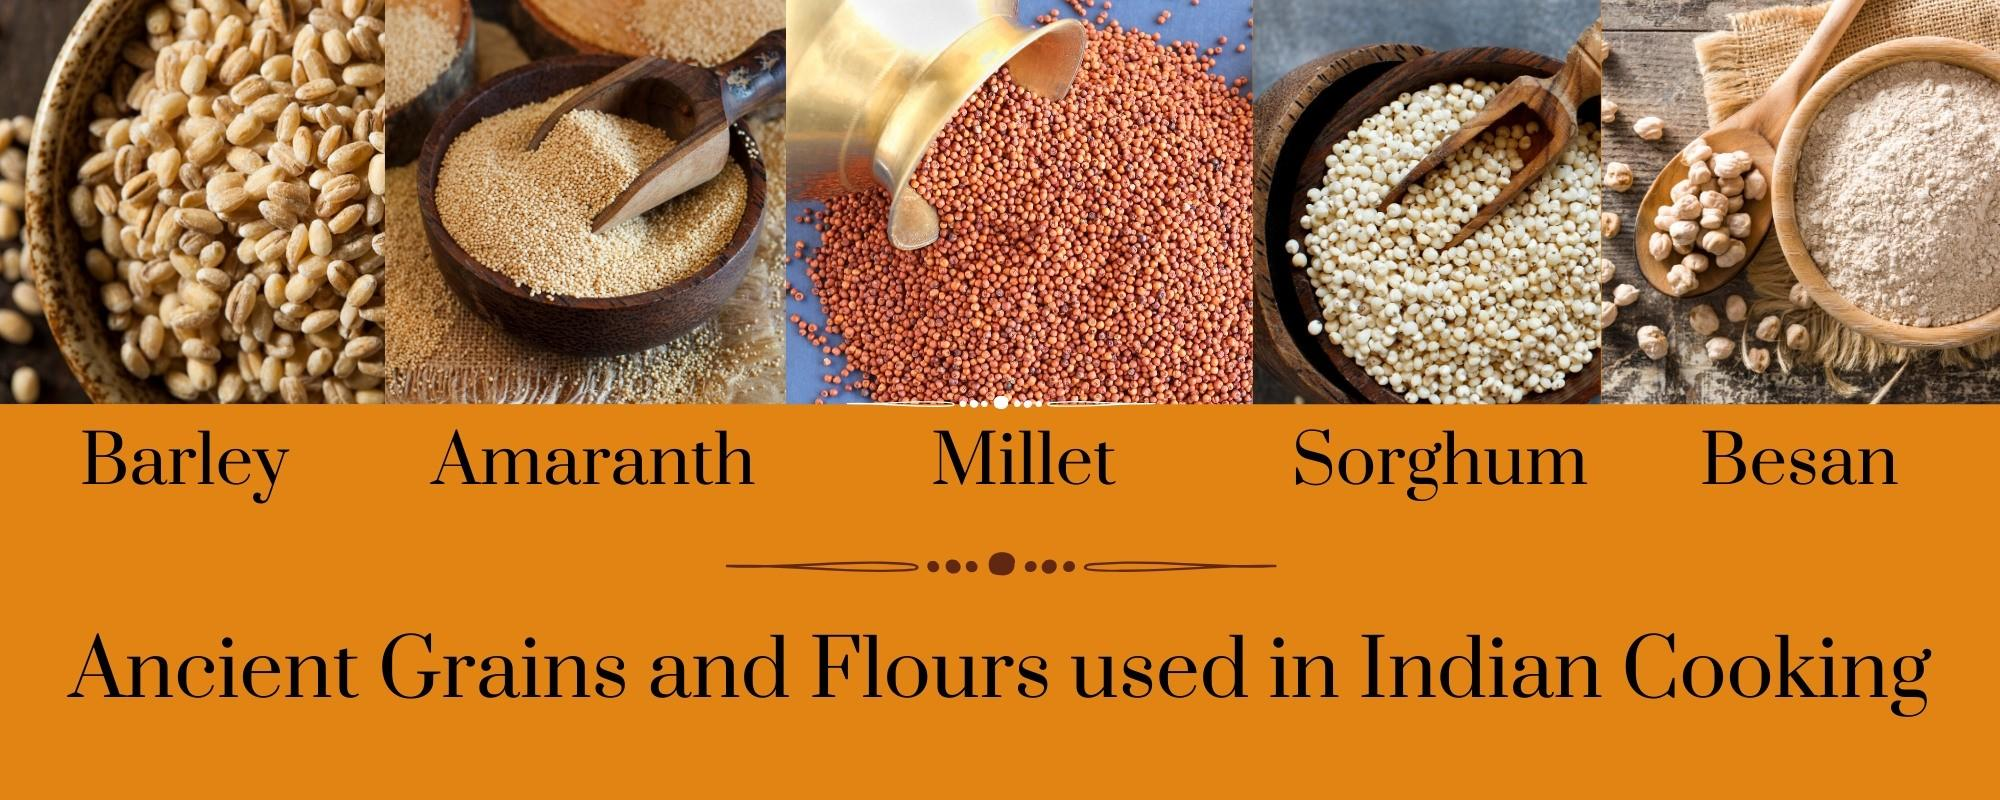 Vegan Indian Recipe Grains Barley, Amaranth, Millet, Sorghum, Besan: Ancient Grains and Flours used in Indian Cooking